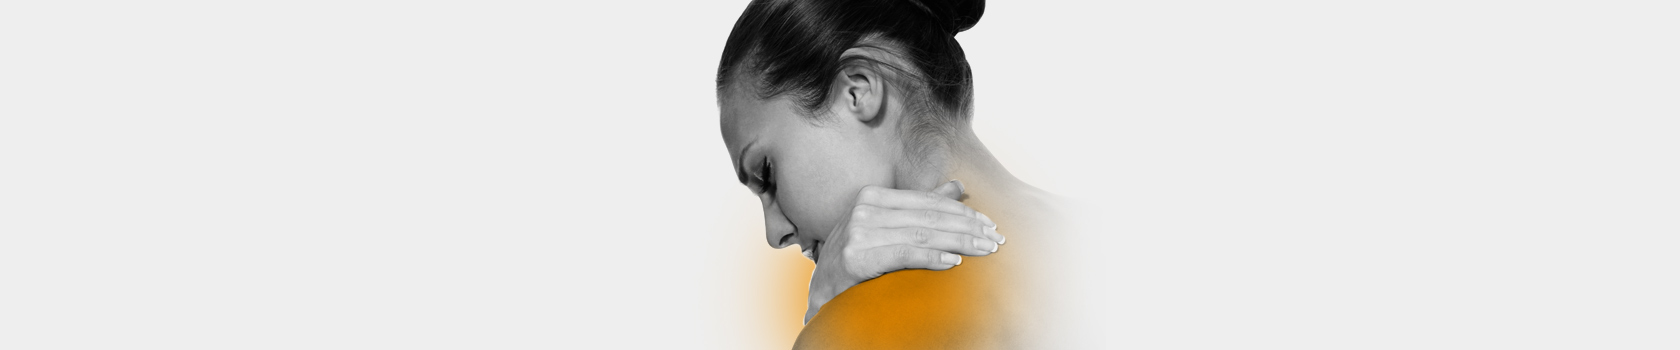 What to do about a frozen shoulder!